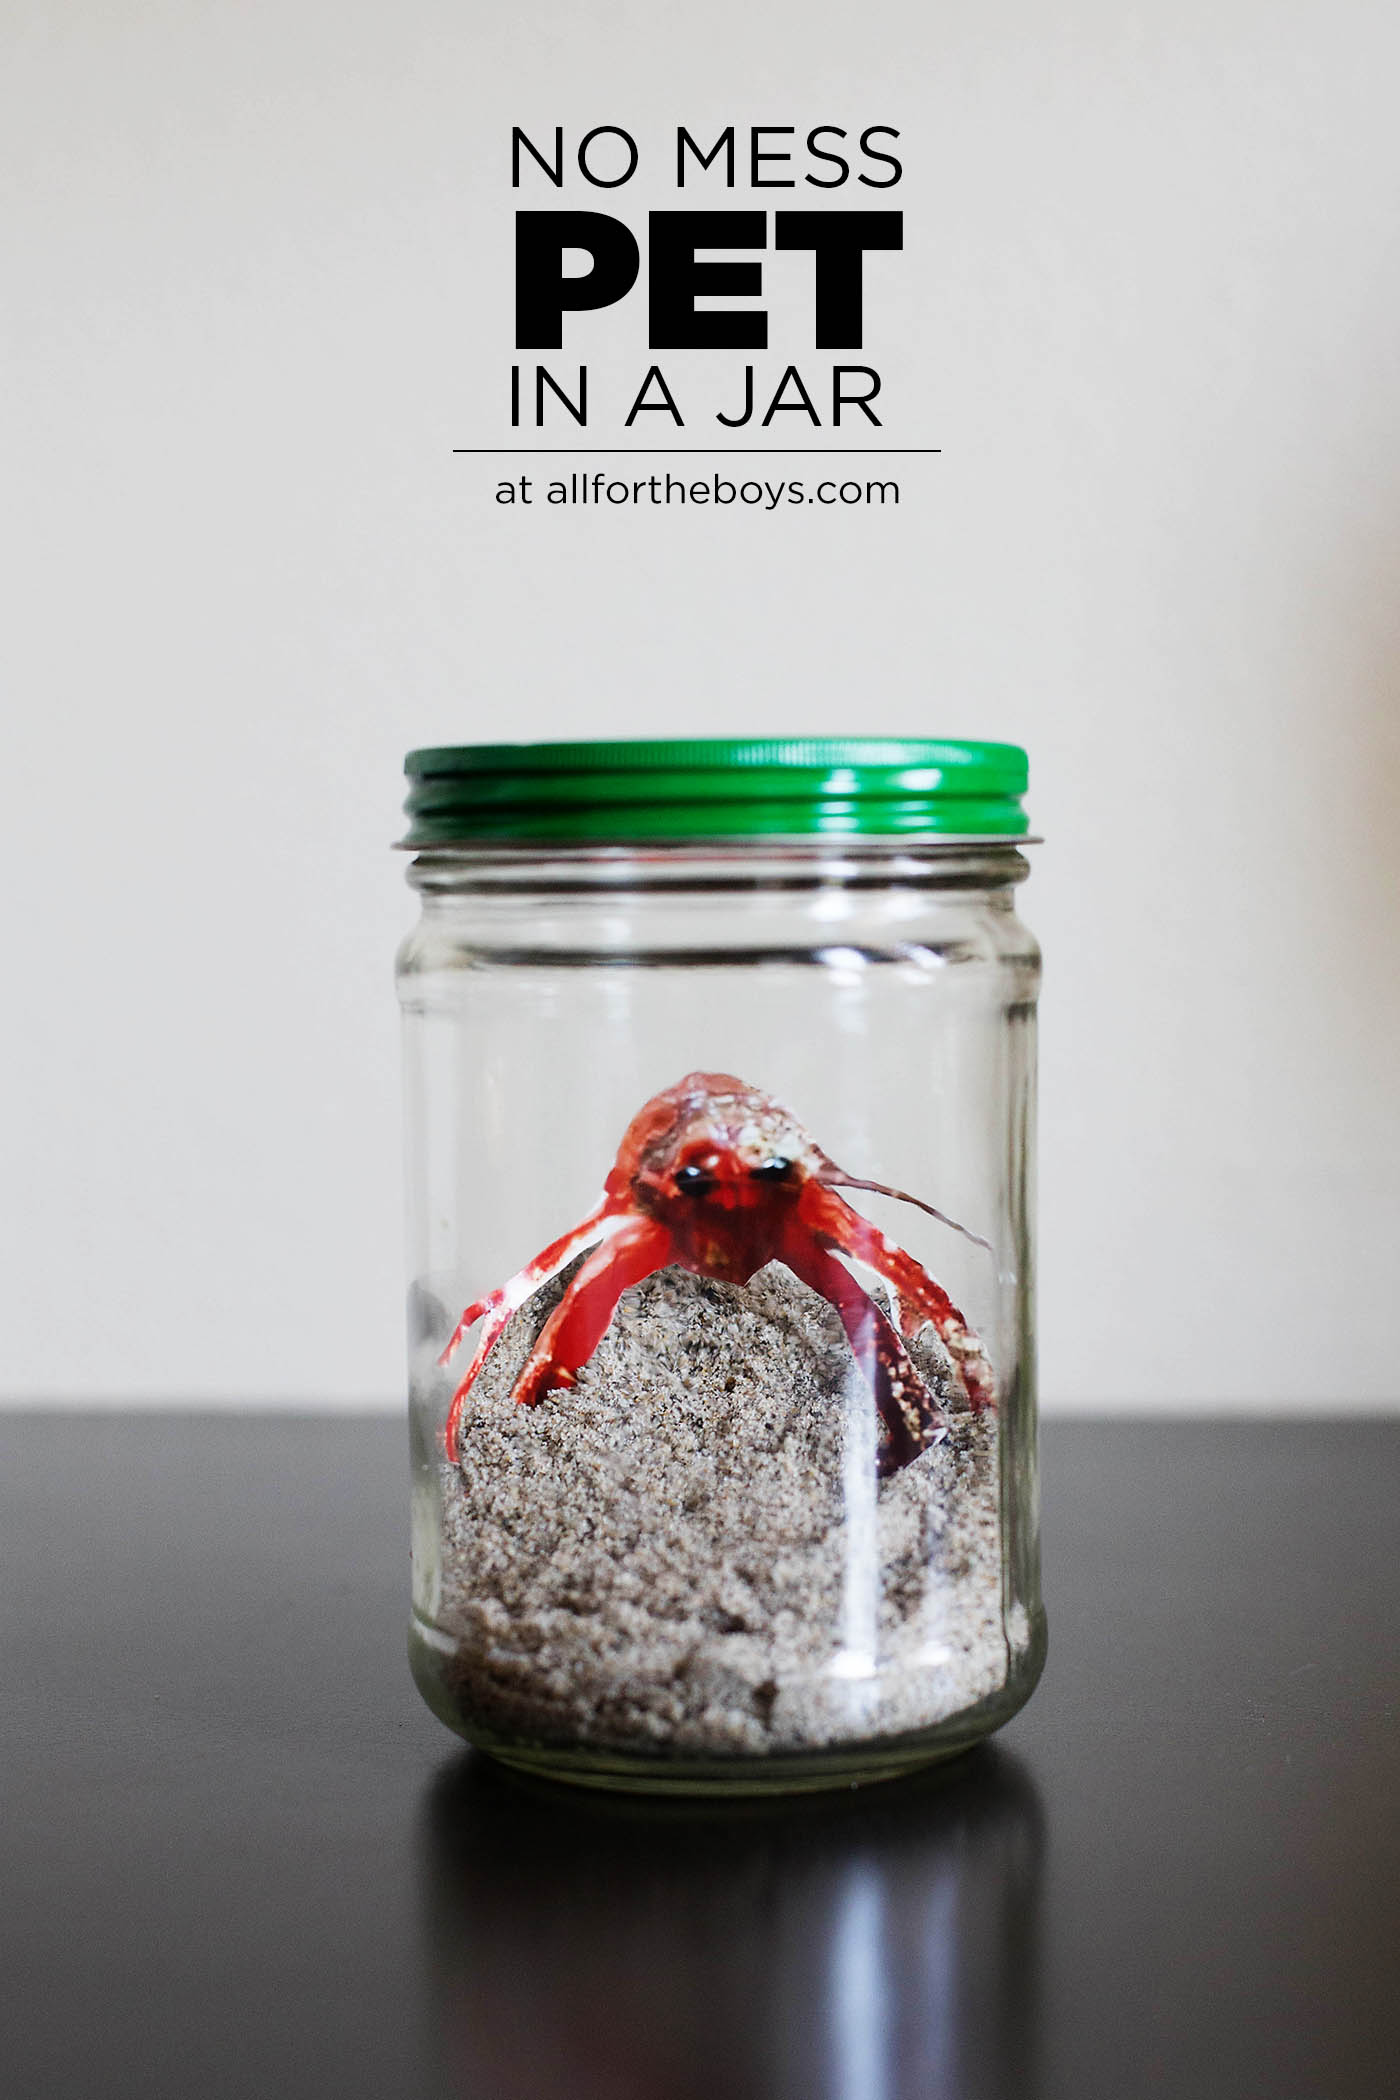 Mess free pet in a jar + Google Express $15 coupon code